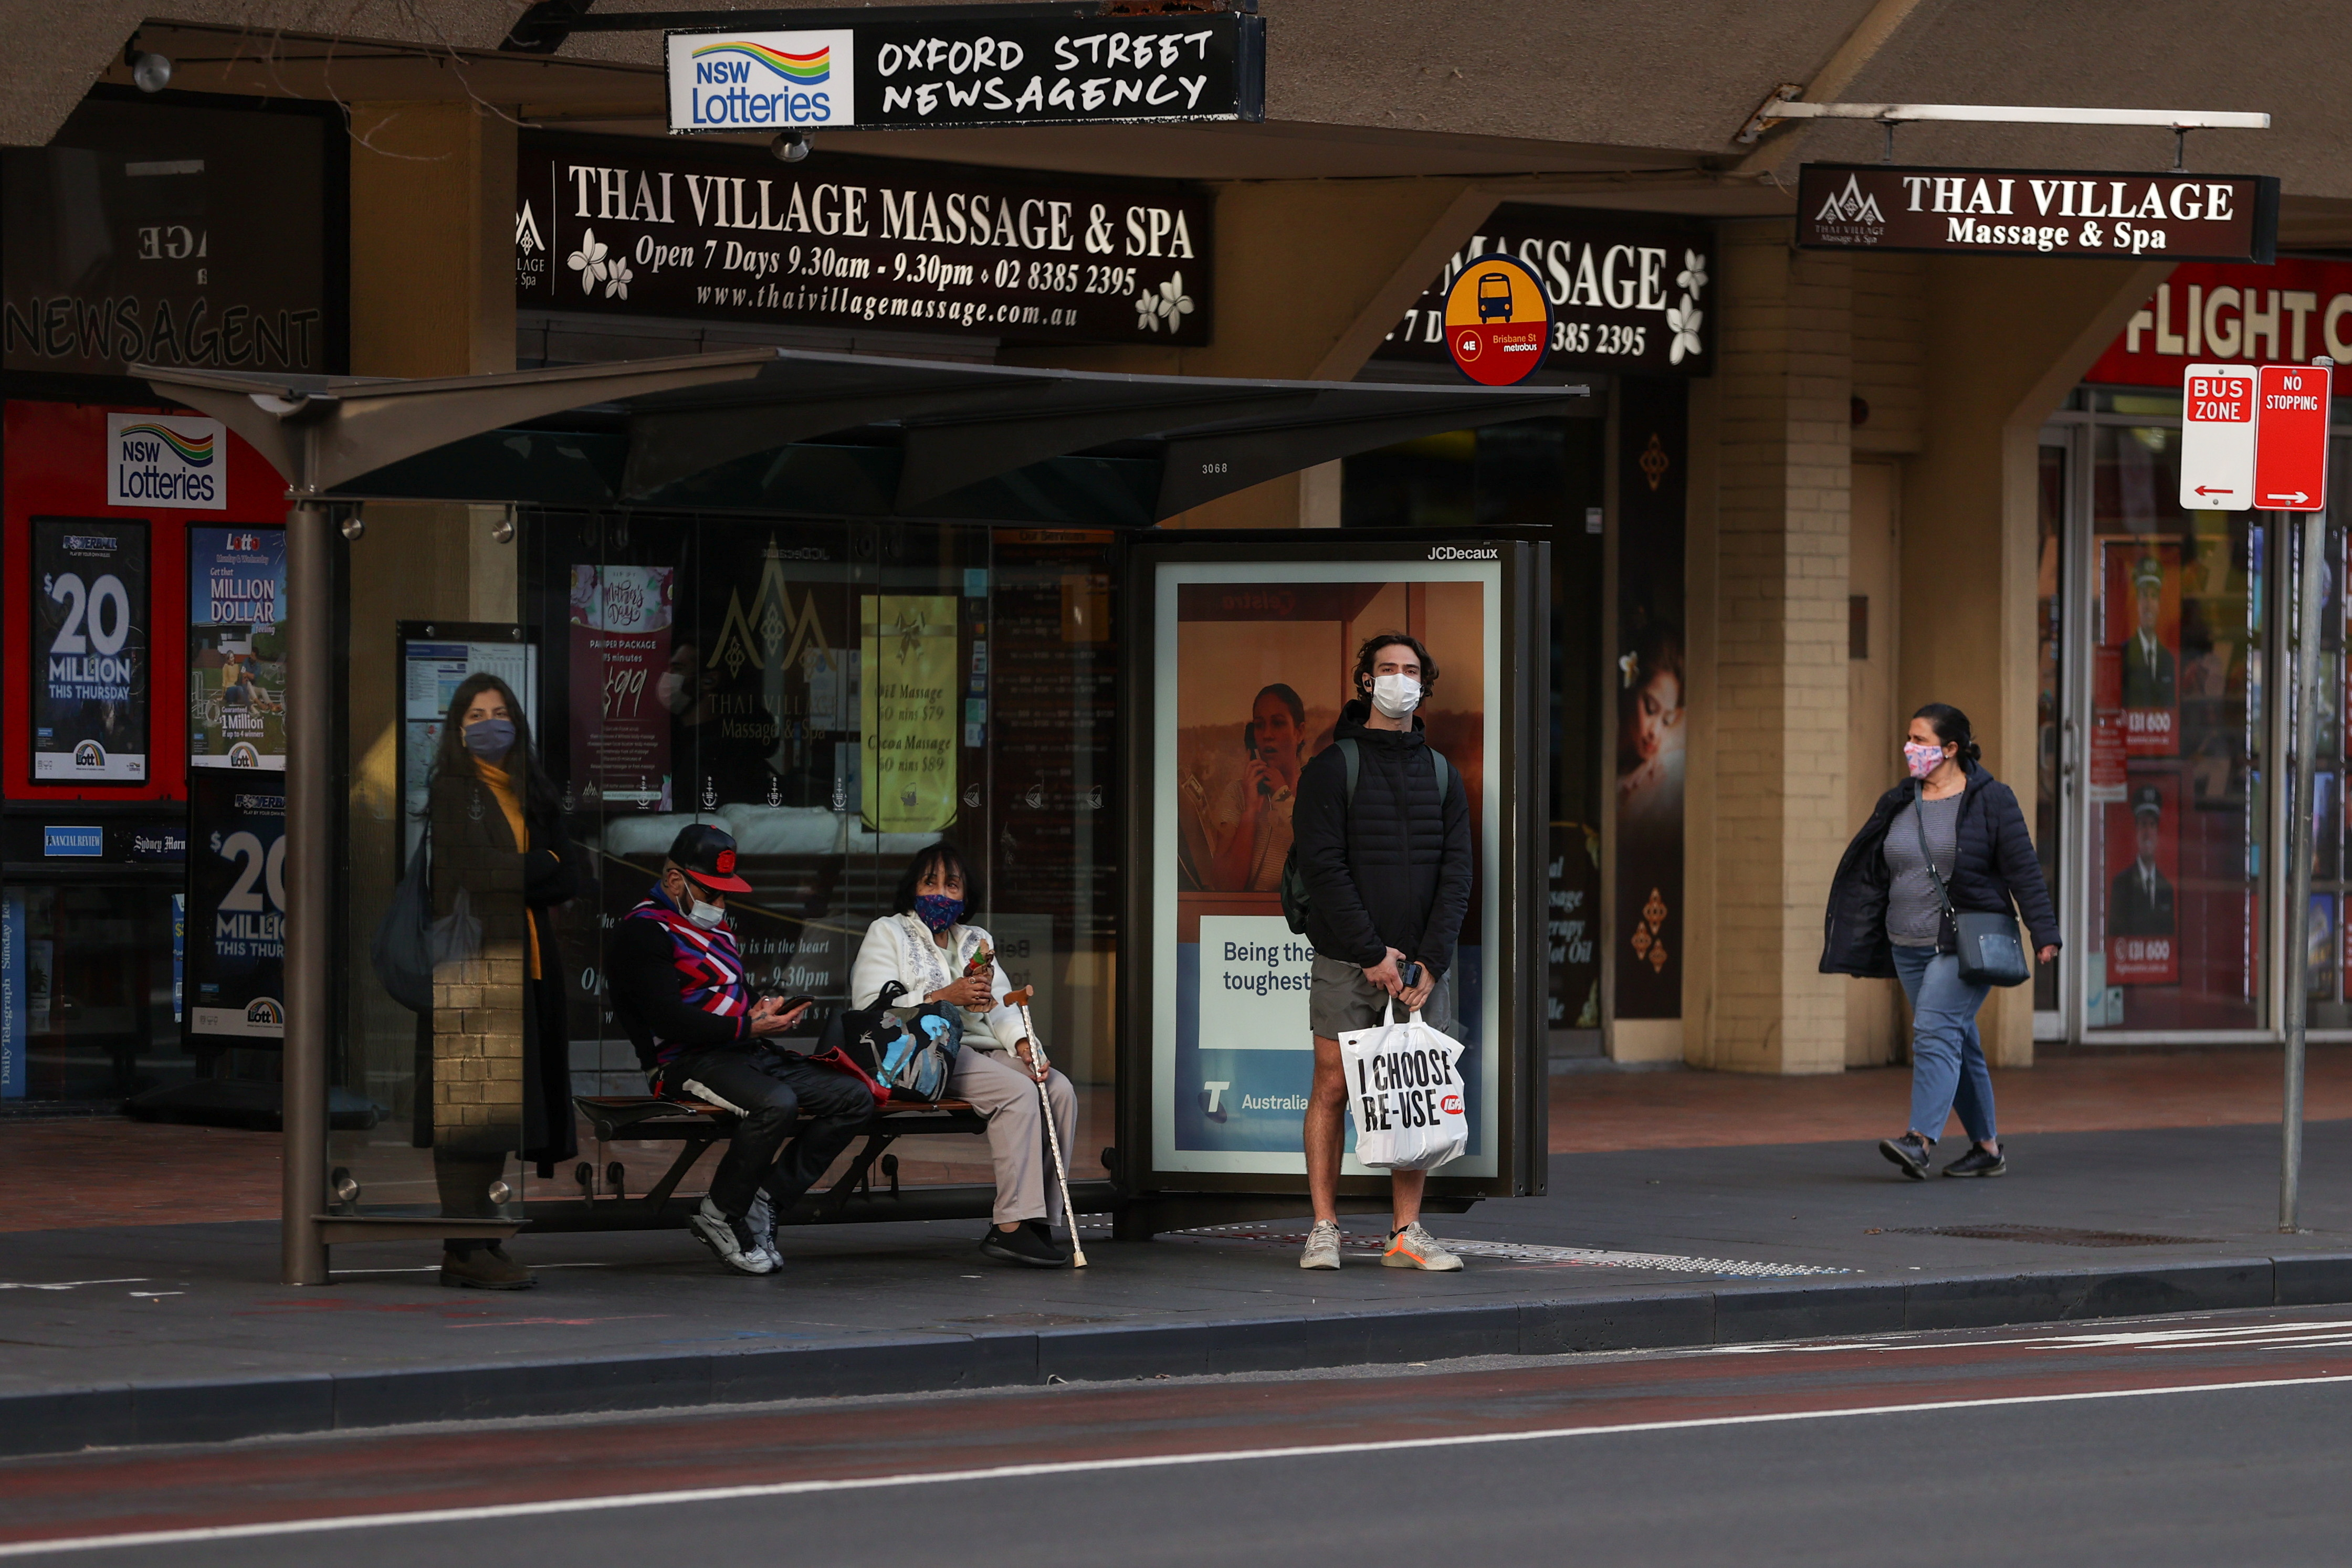 People wearing protective face masks wait at a bus stop during a lockdown to curb the spread of a coronavirus disease (COVID-19) outbreak in Sydney, Australia, July 22, 2021.  REUTERS/Loren Elliott